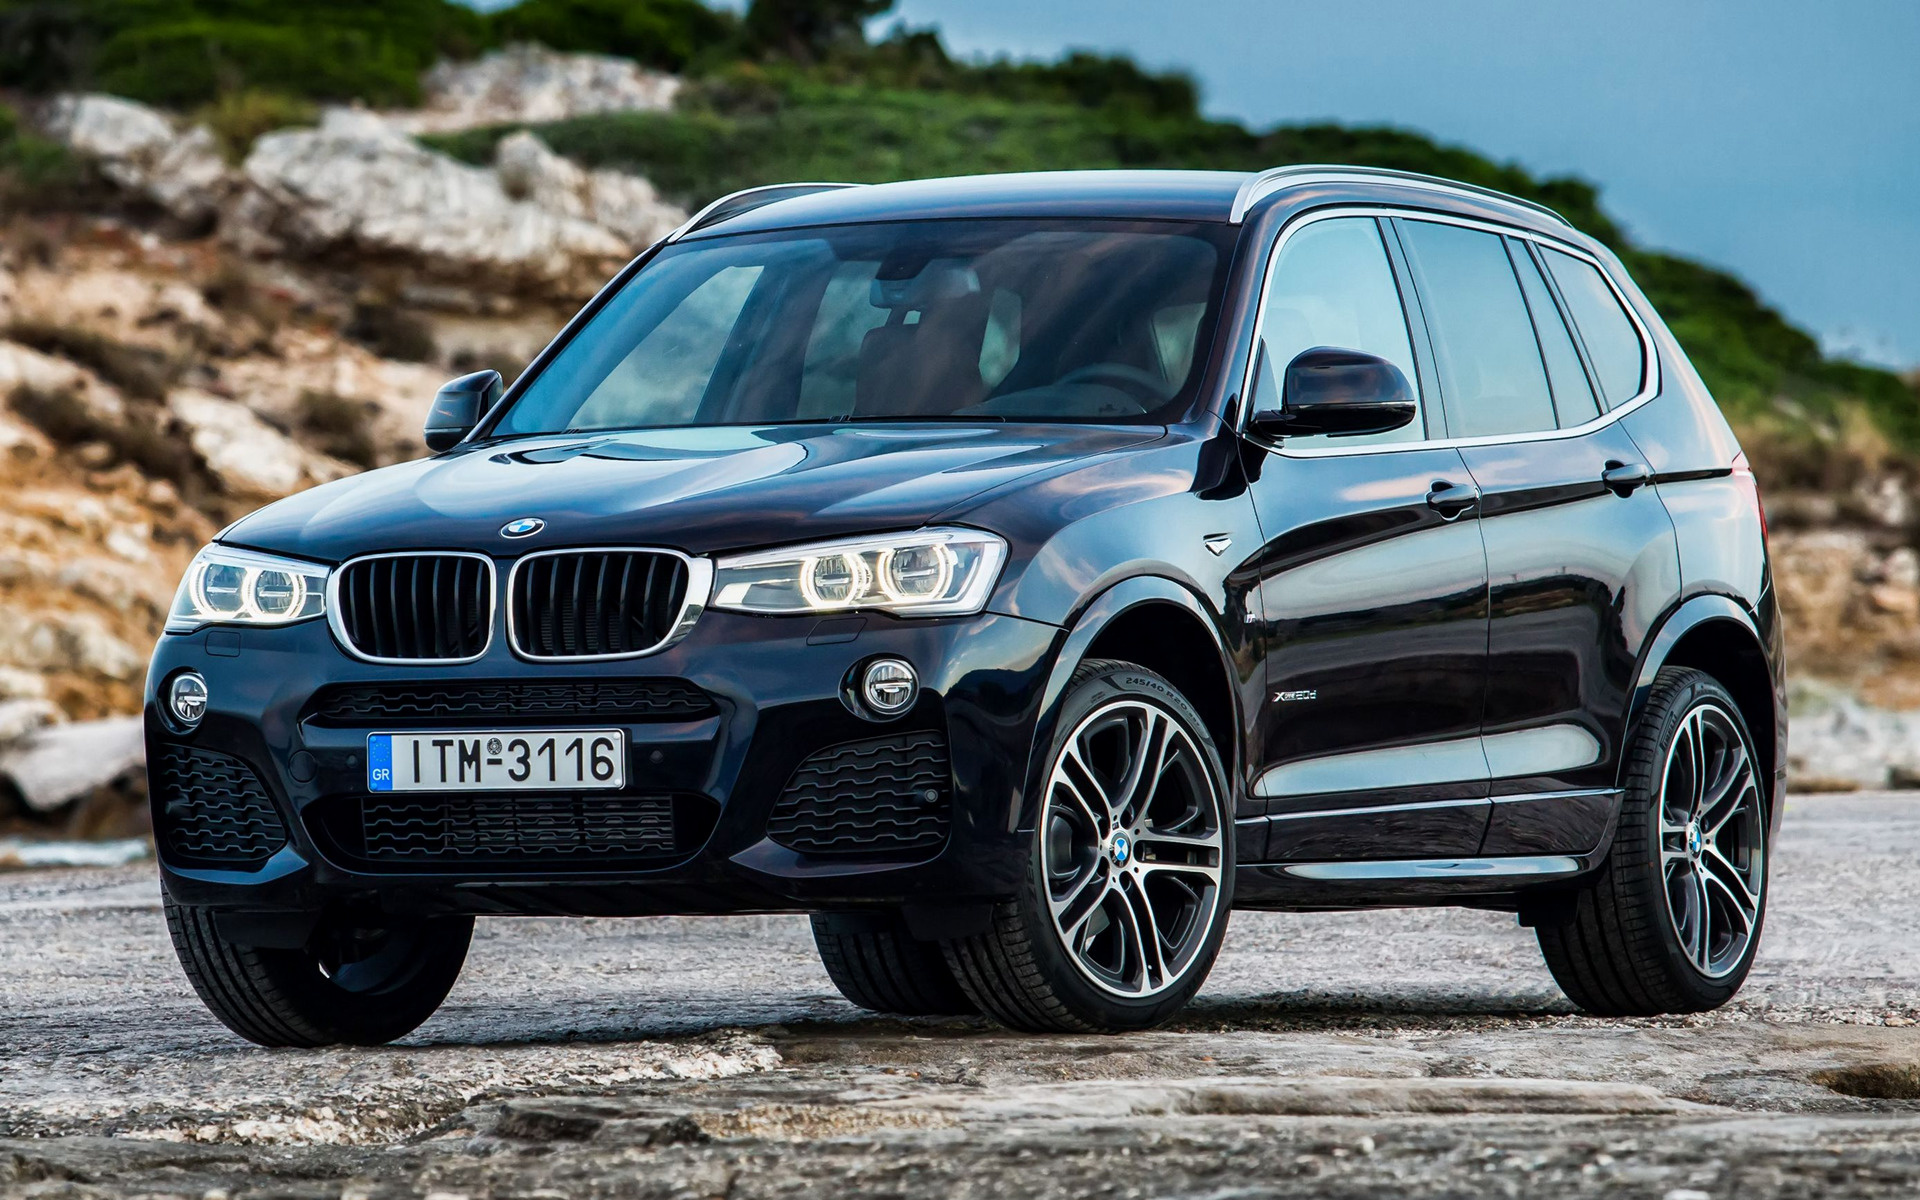 2017 Bmw X3 M Sport Limited Edition Wallpapers And Hd